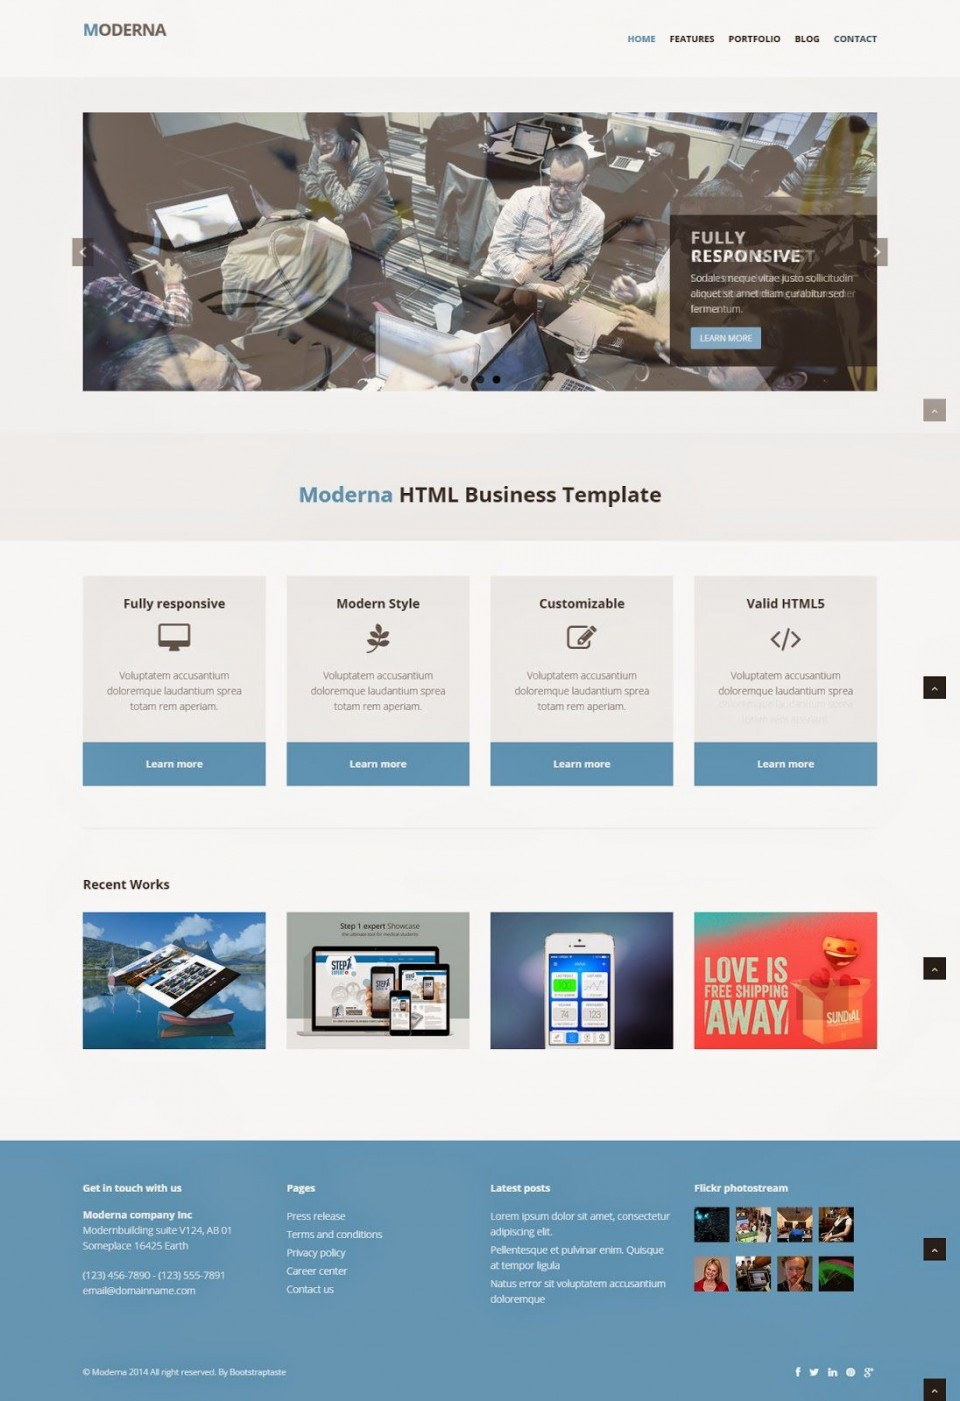 004 Fearsome Free Responsive Website Template Download Html And Cs Jquery Inspiration  For It Company960